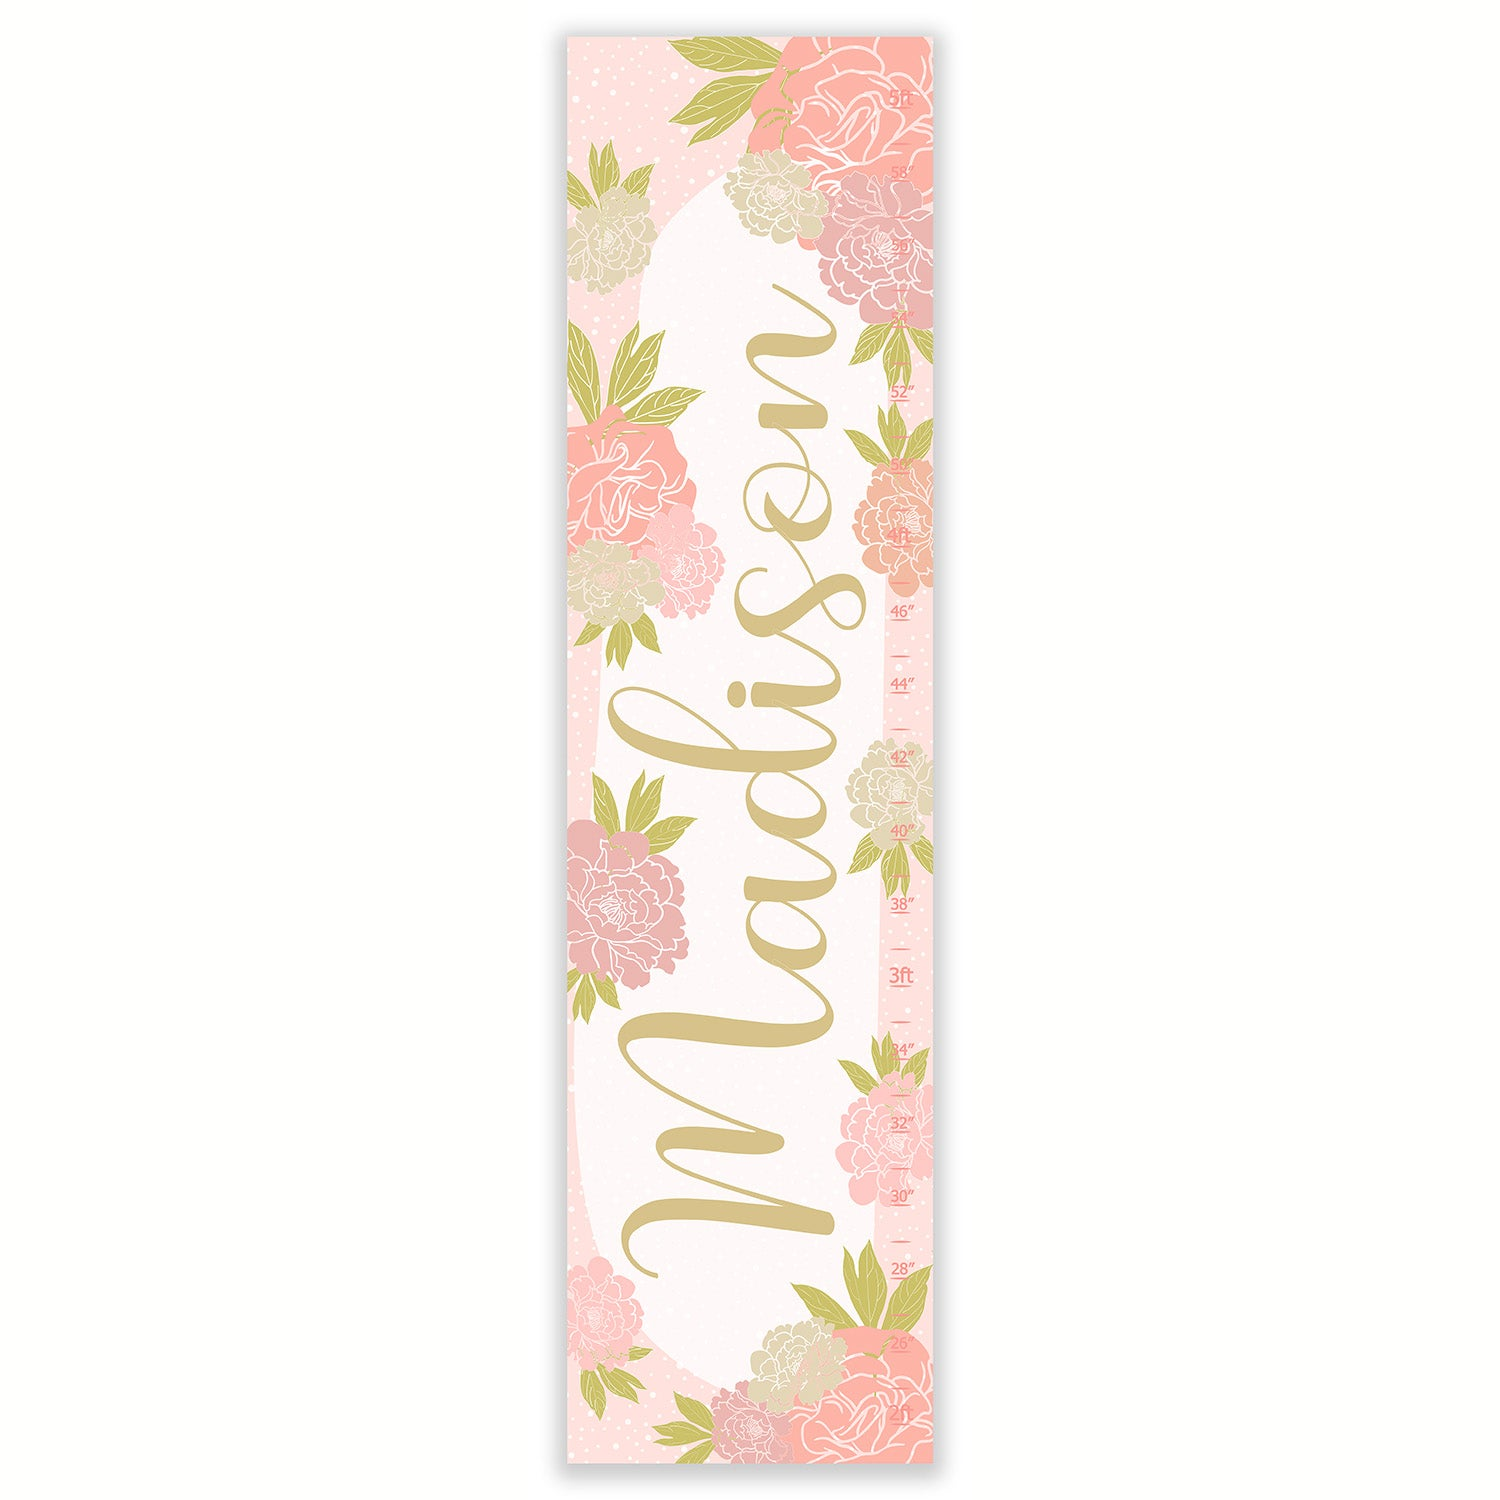 Image of Blush and Gold Calligraphy Name with Peonies - Personalized Canvas Growth Chart